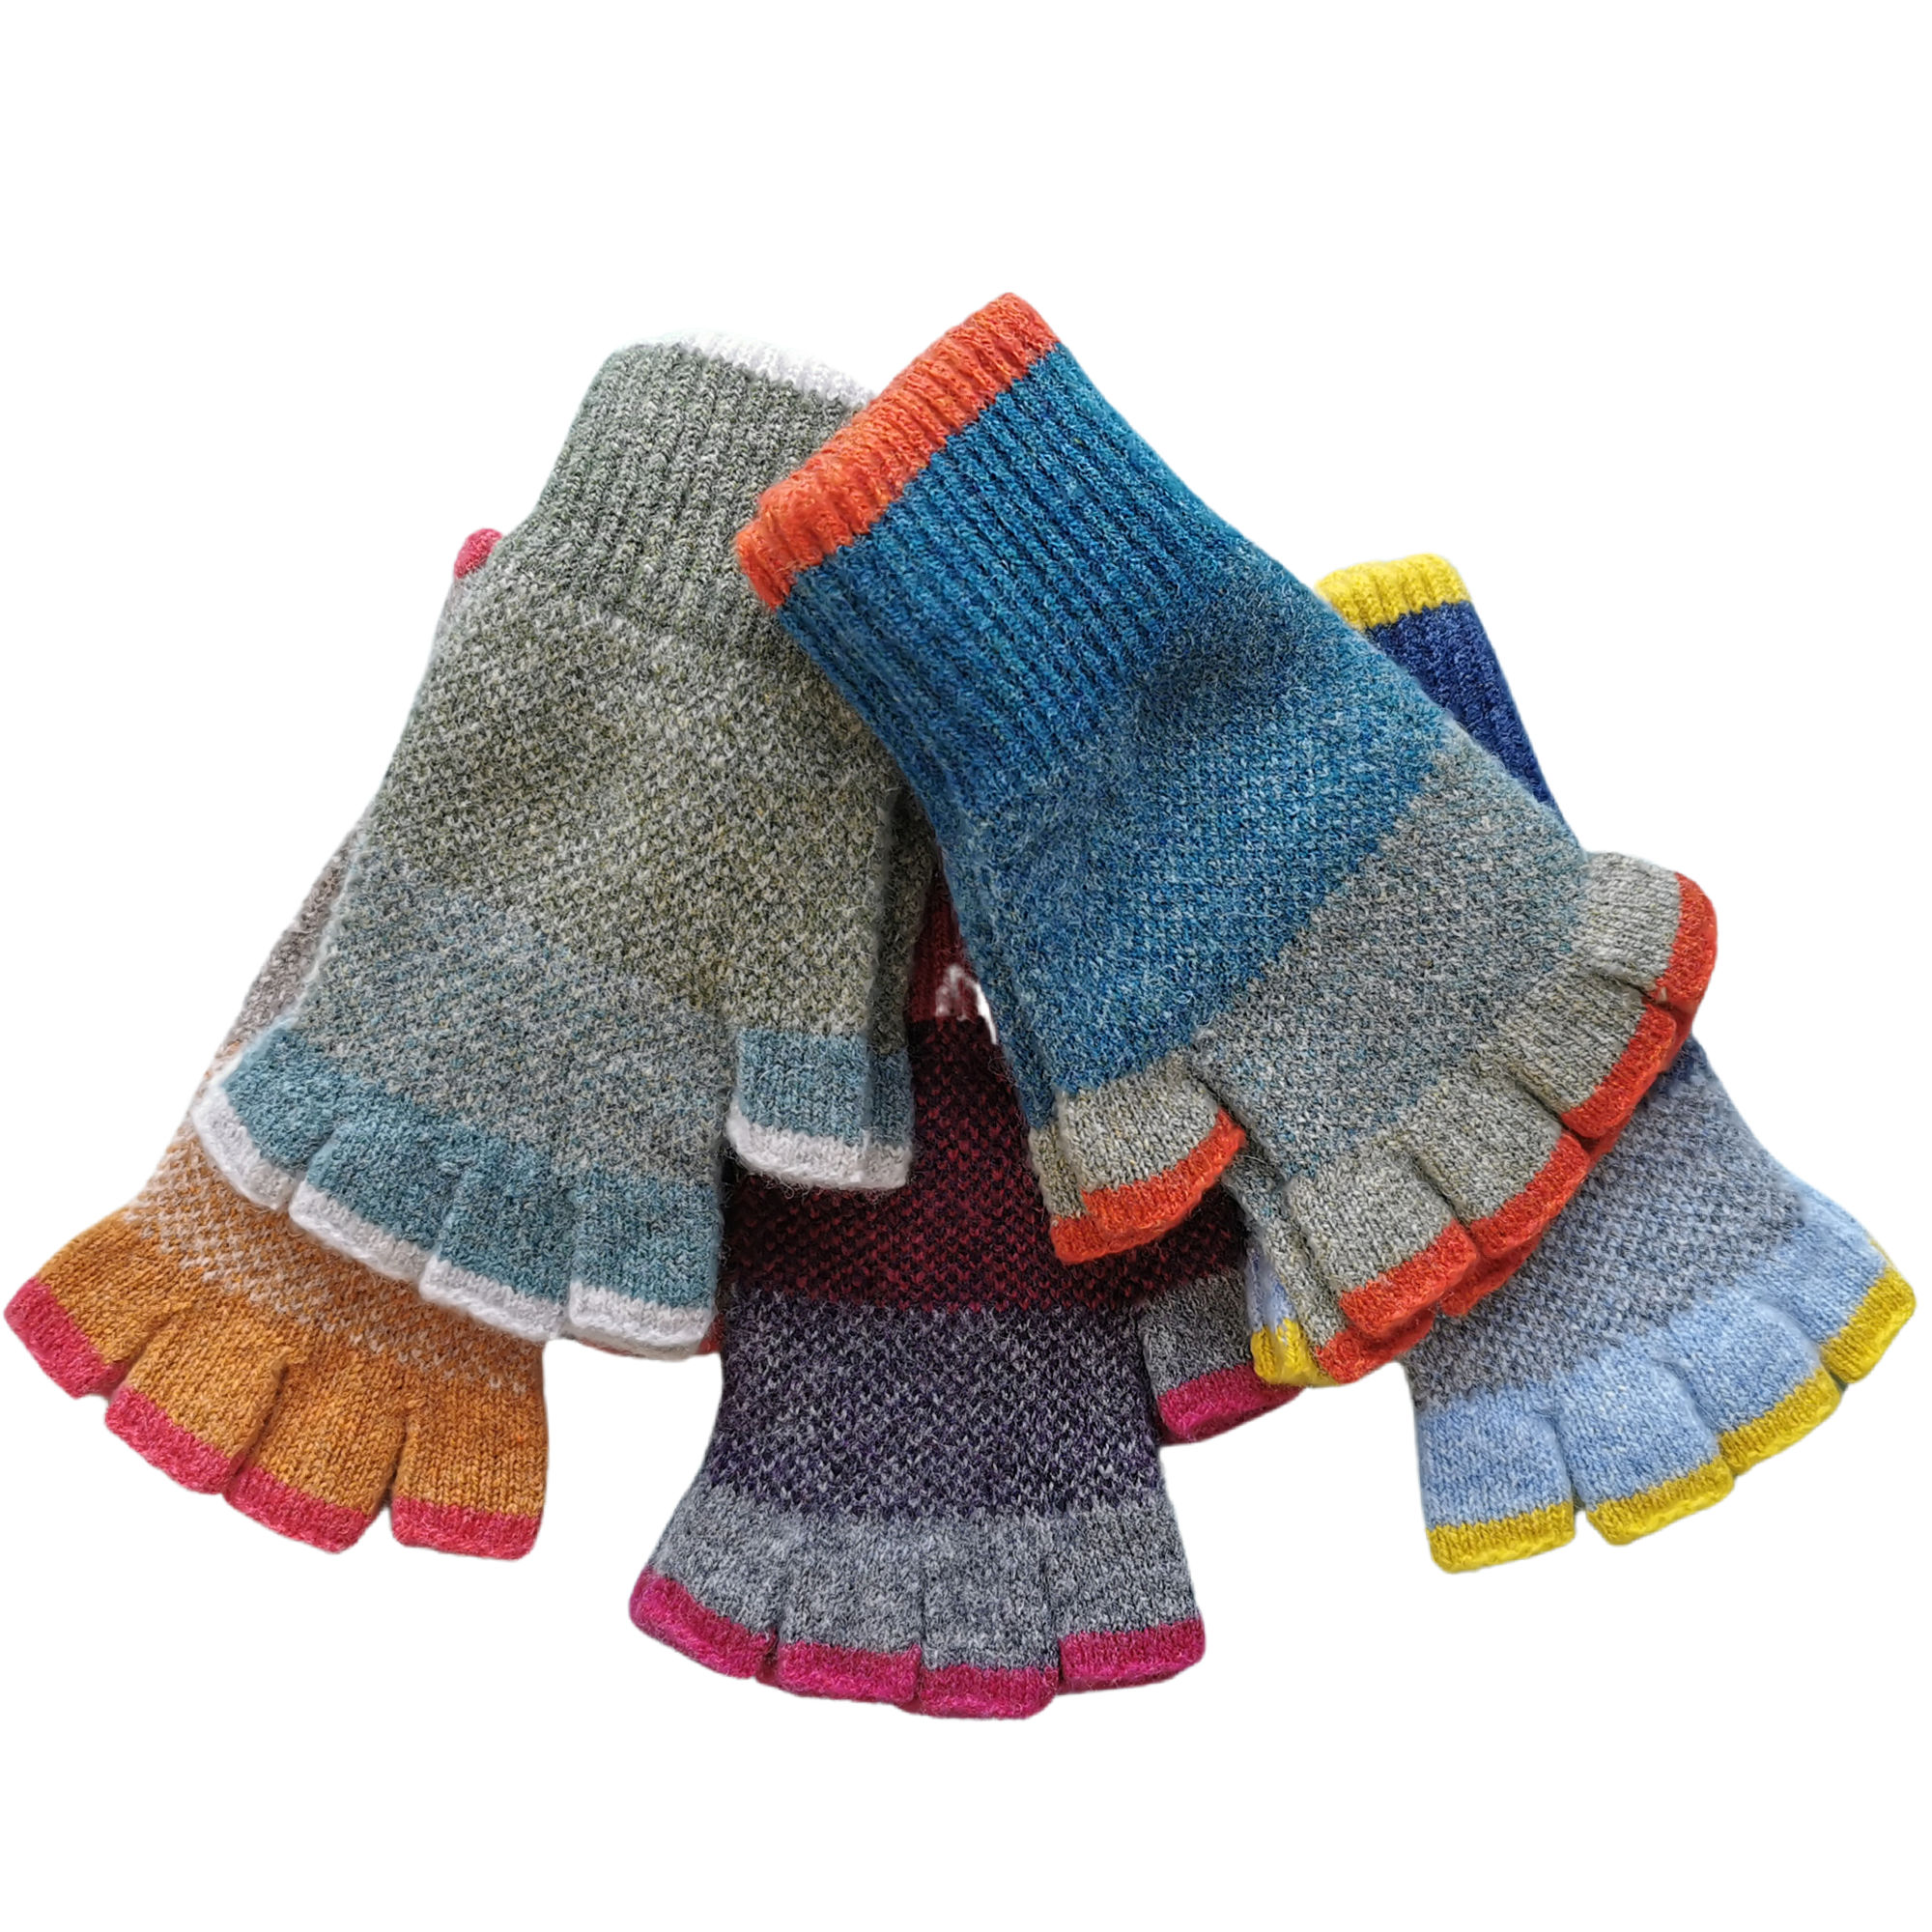 Lambswool Fingerless Gloves by Louise Wedderburn